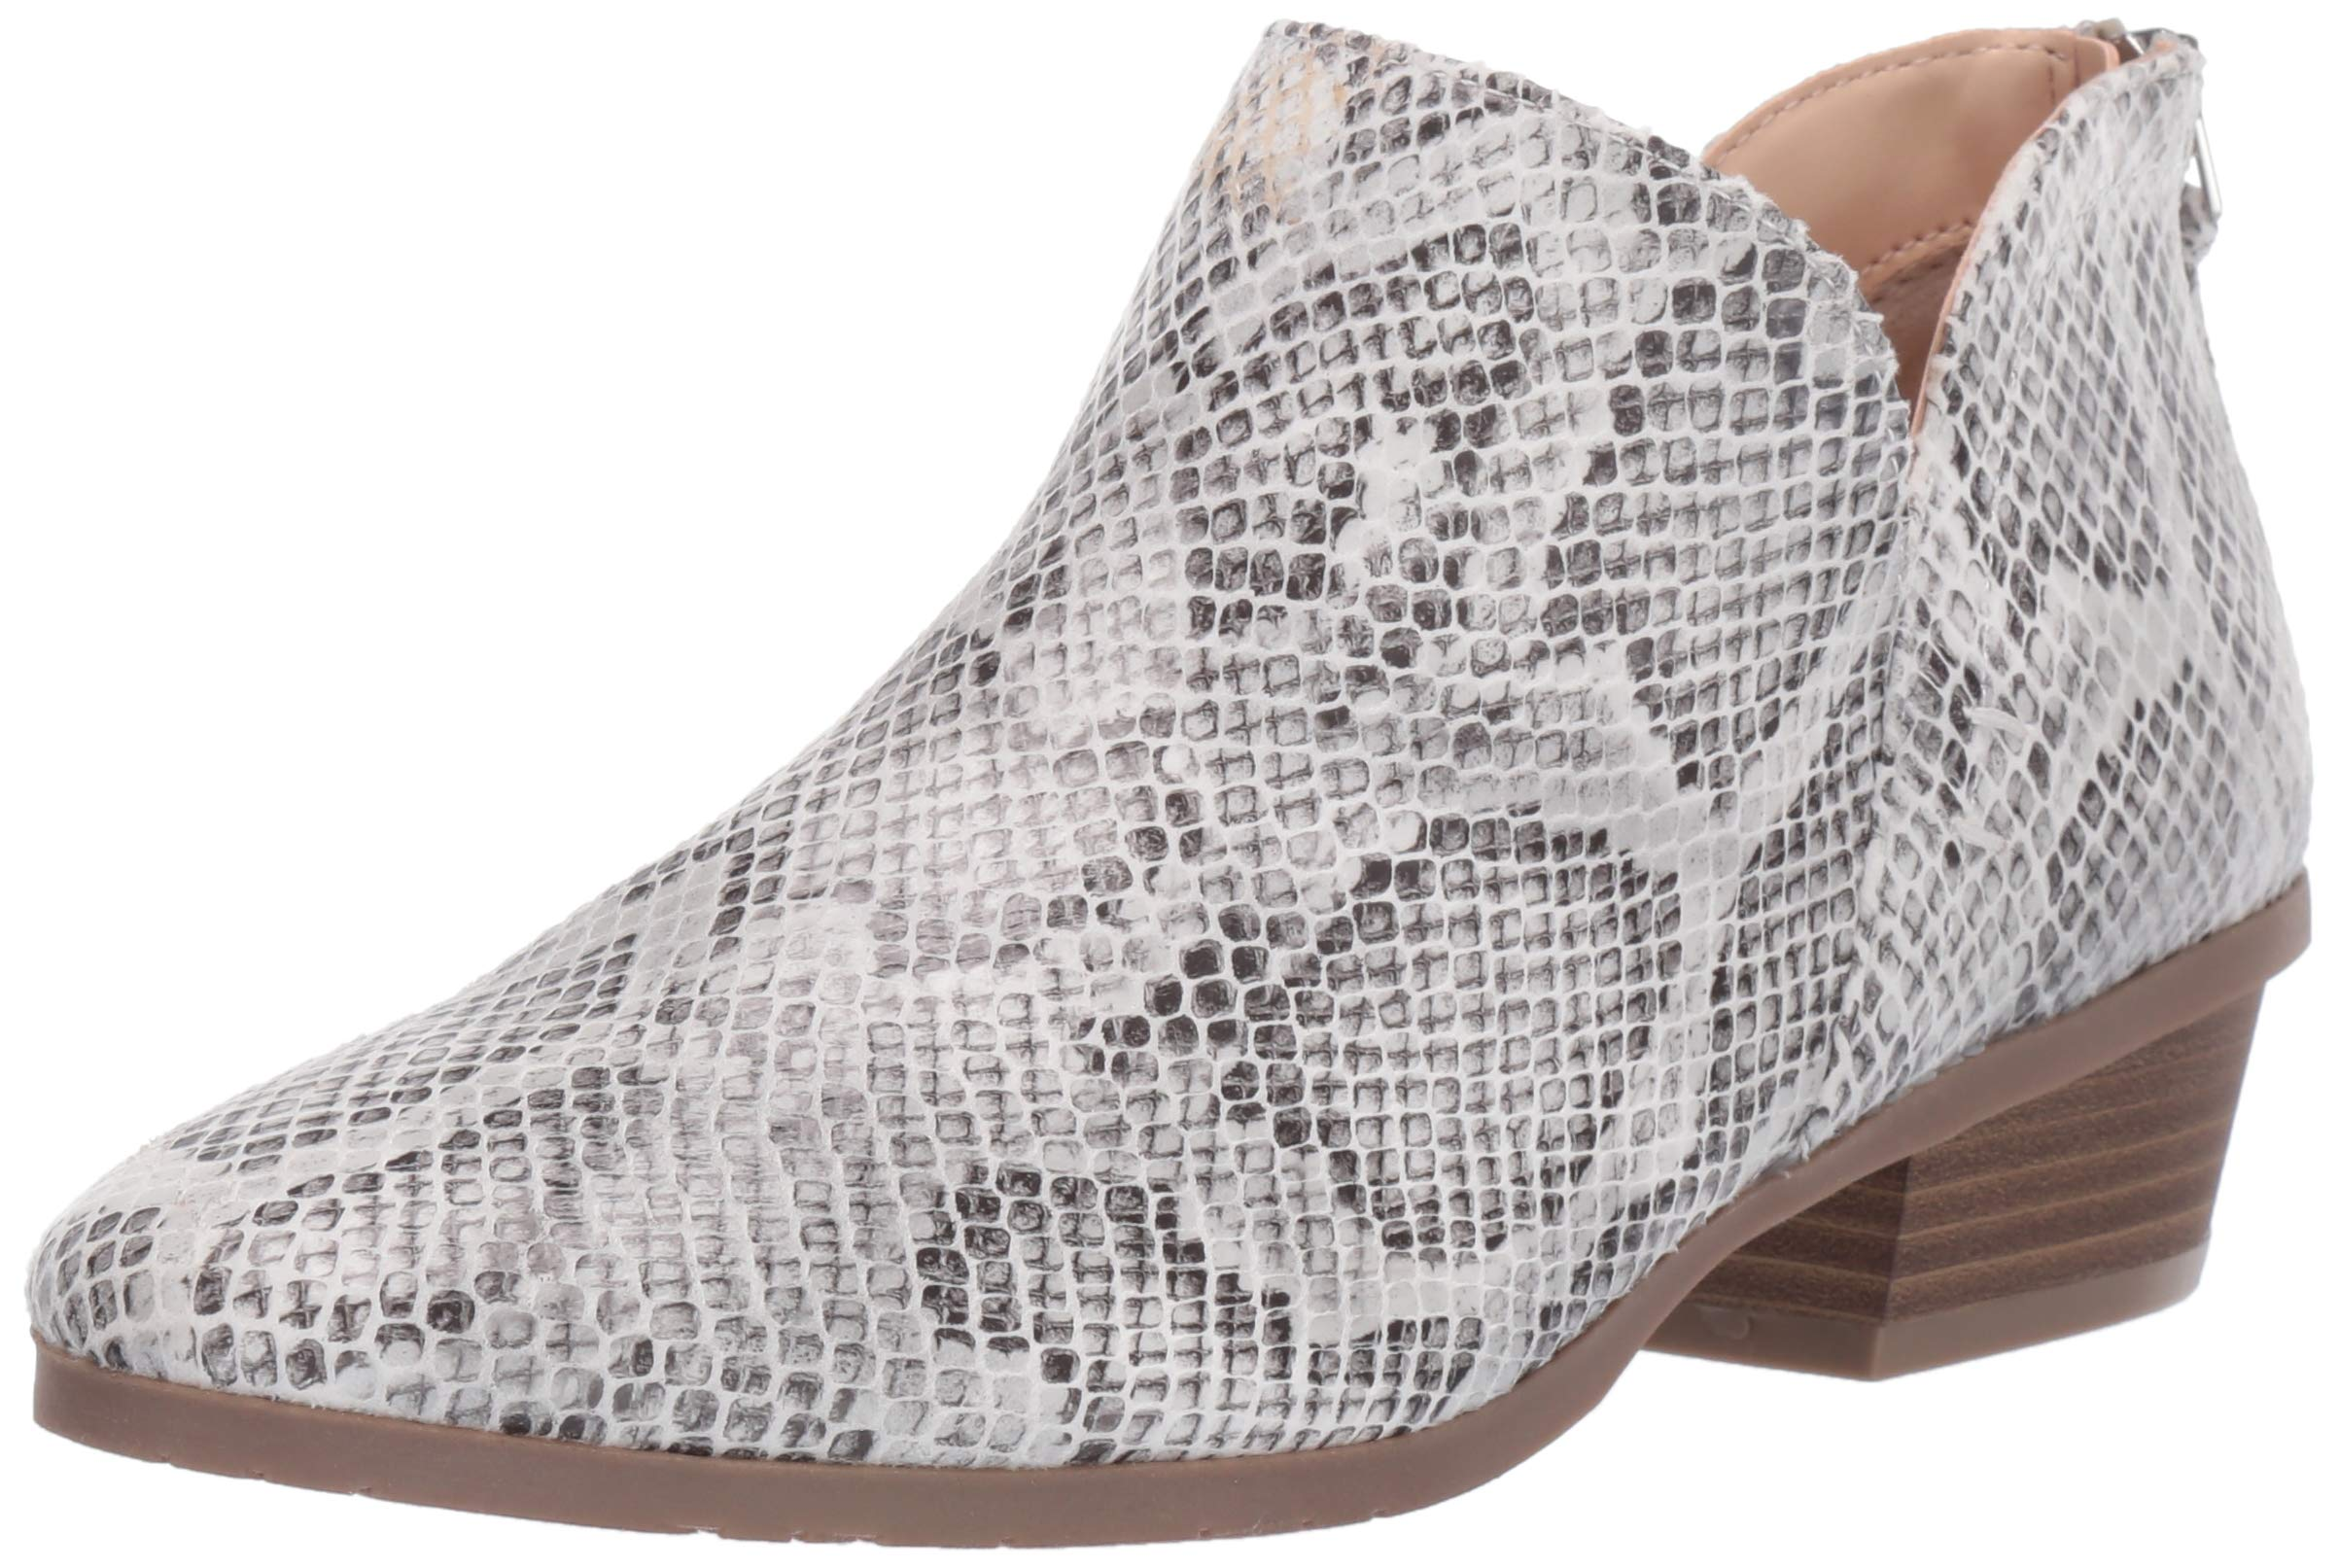 Kenneth Cole REACTION Women's Side Way Ankle Bootie Boot, Natural